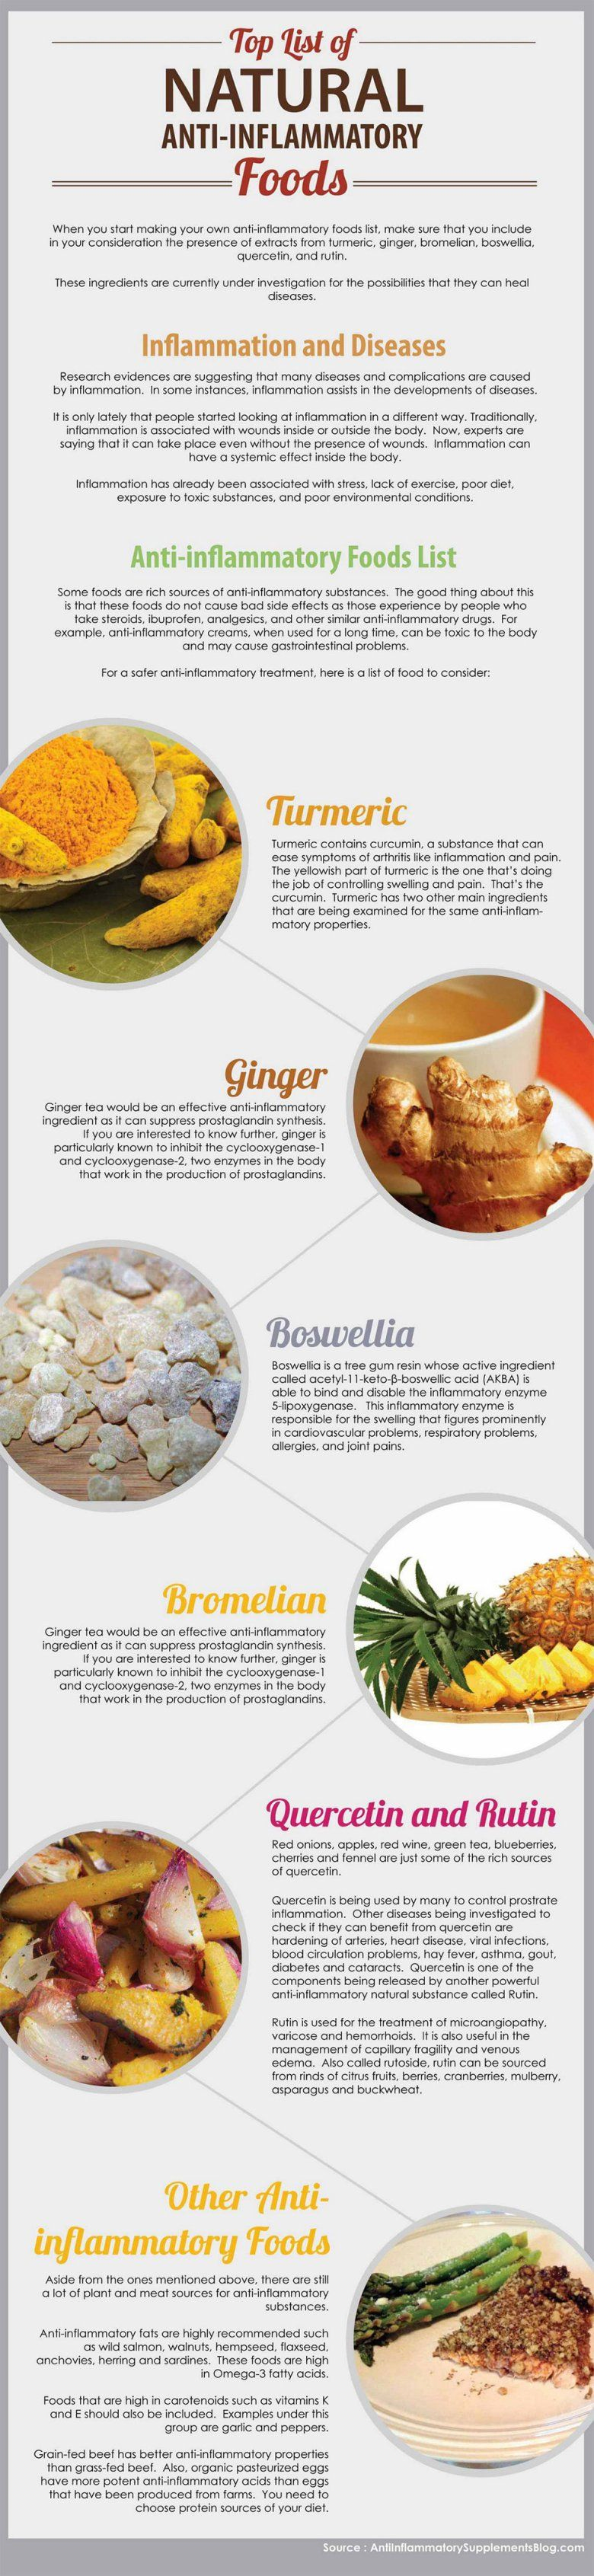 anti-inflammatory-foods-list | reiki & holistic health | pinterest